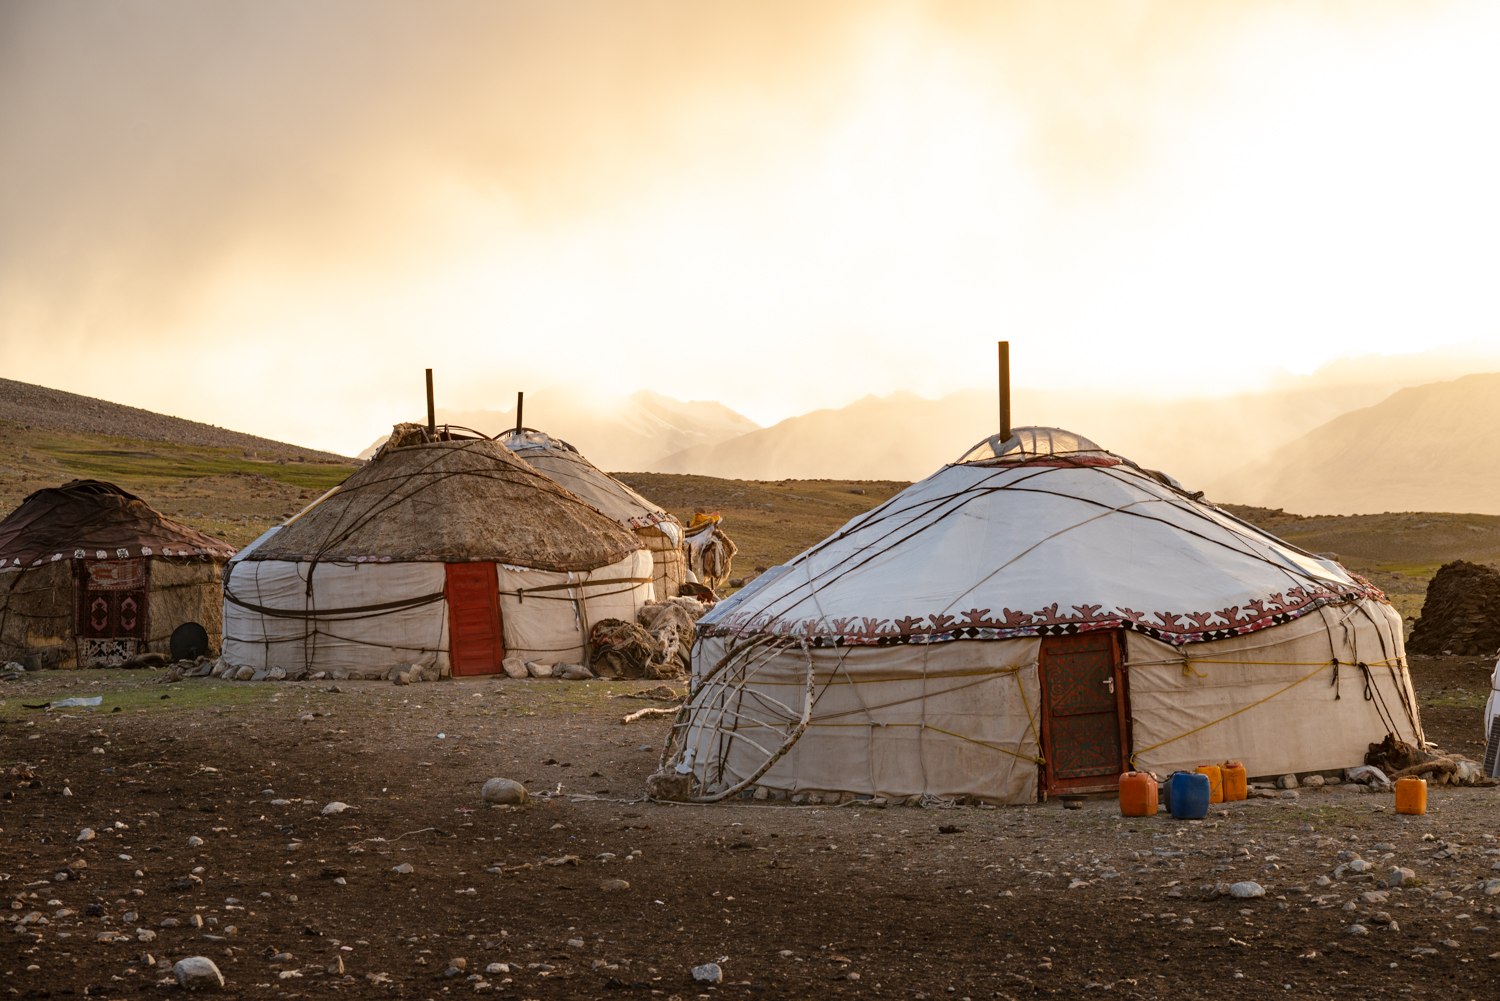 Traditional yurts in the mountains of northeastern Afghanistan